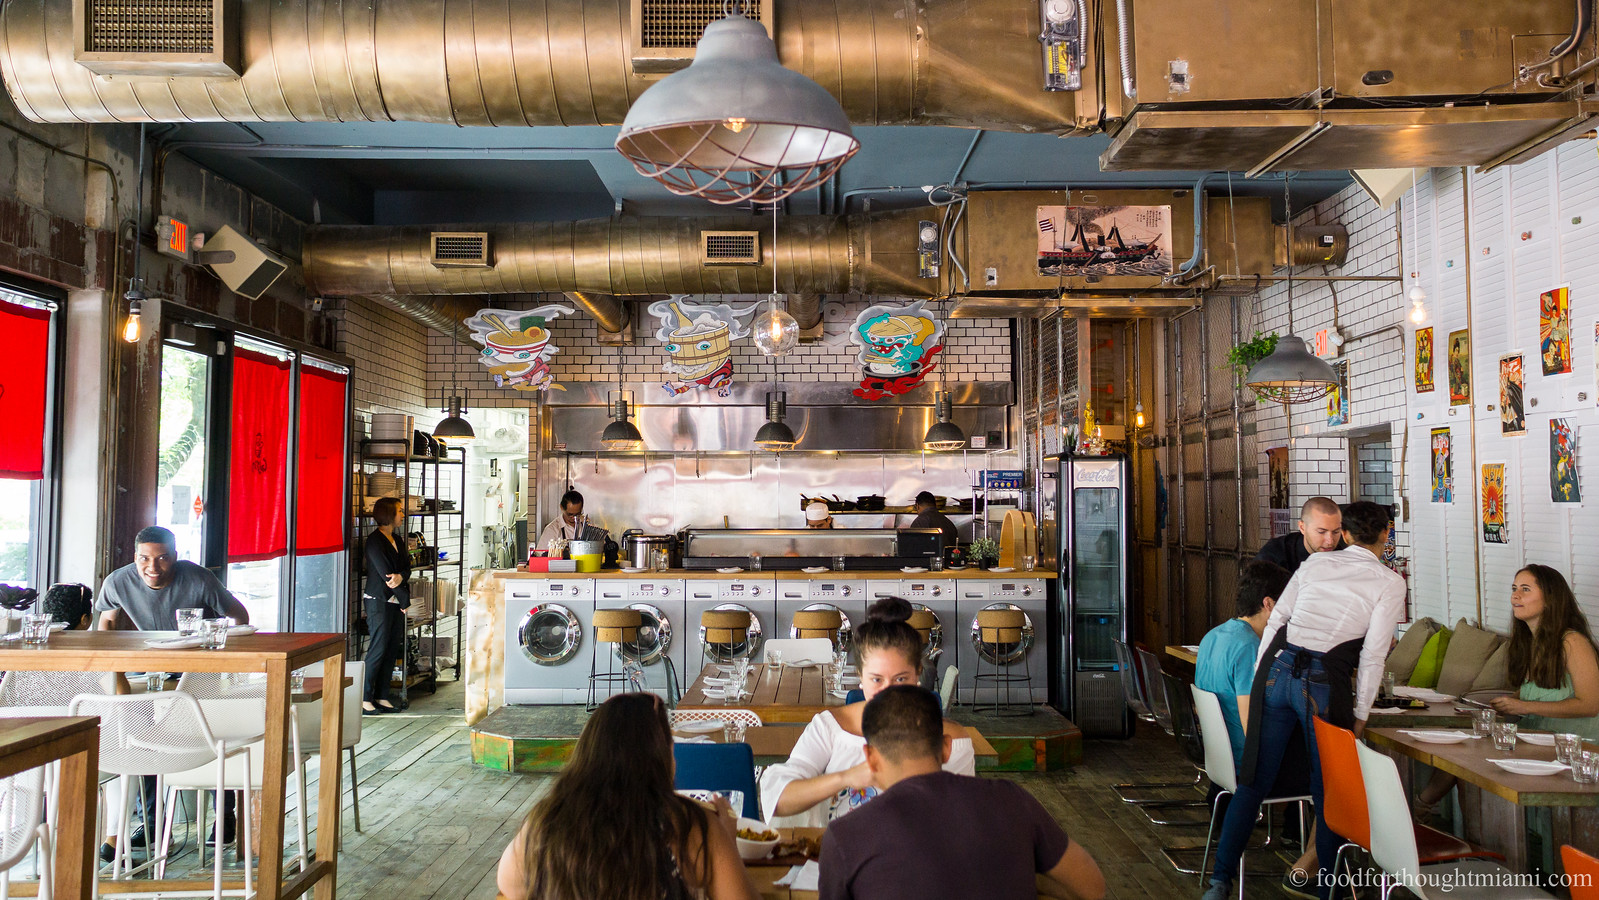 food for thought | a miami food blog: first thoughts: Gaijin Izakaya